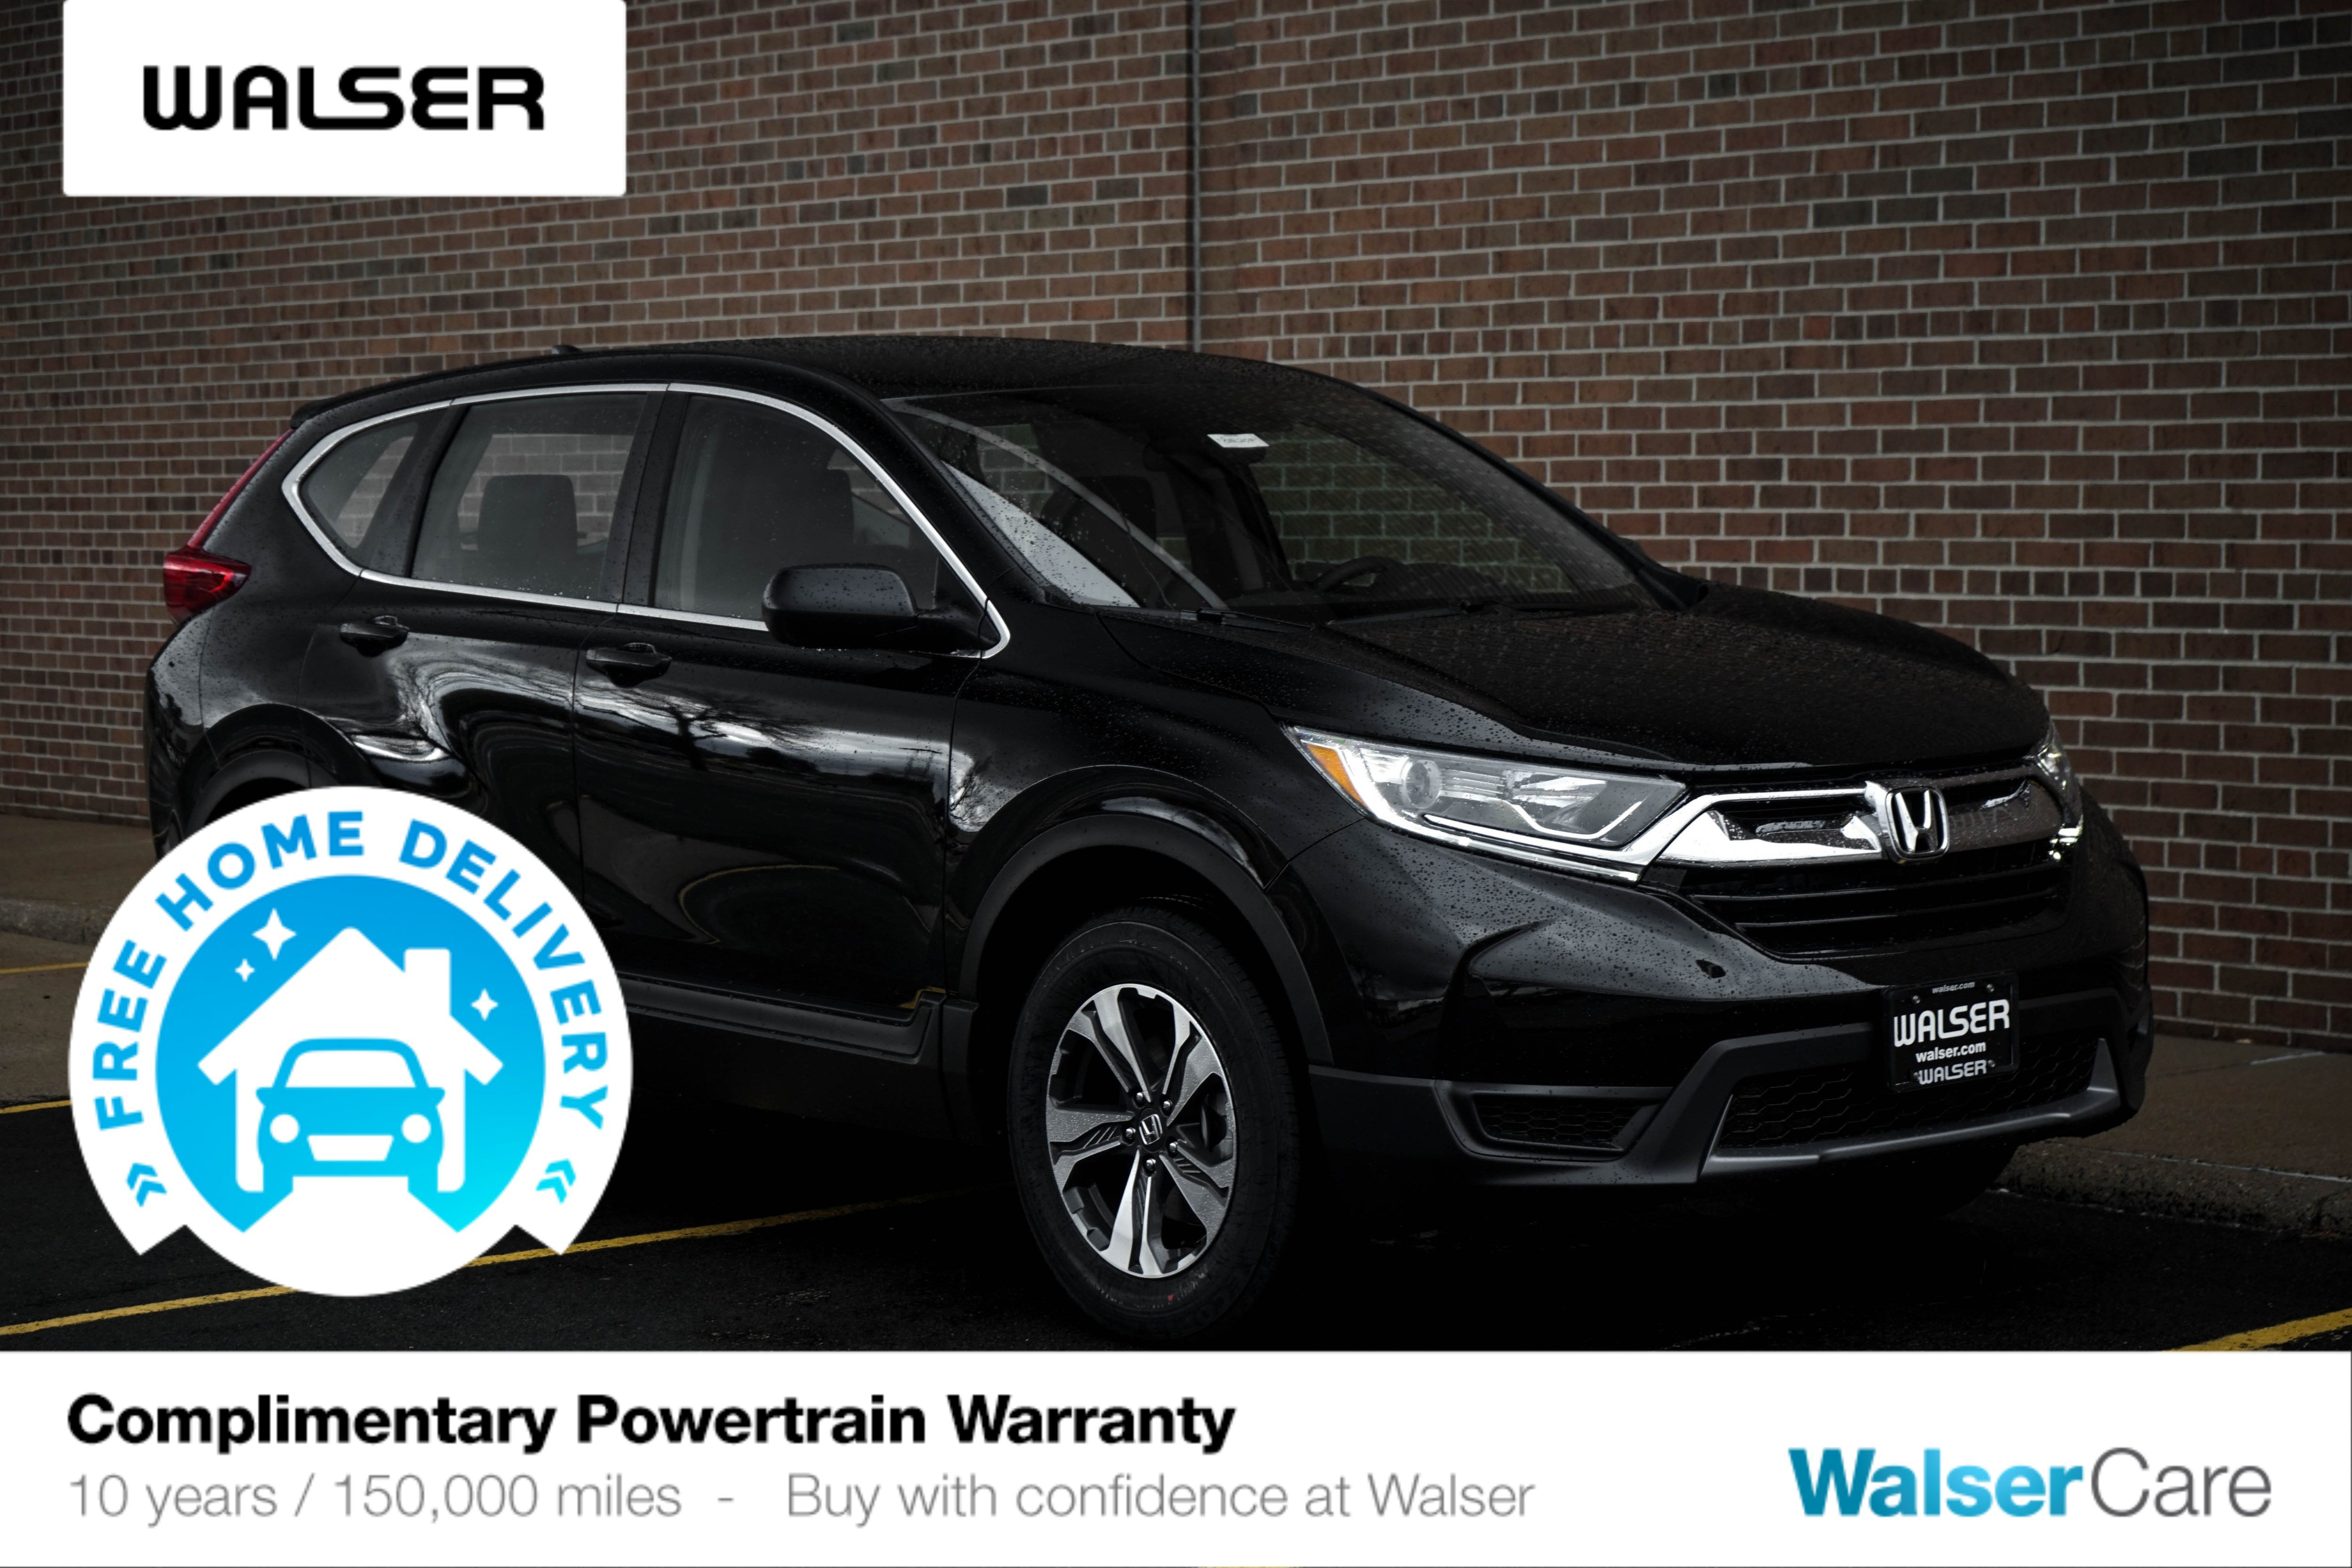 2019 Honda CR-V LX AWD Lease Deals